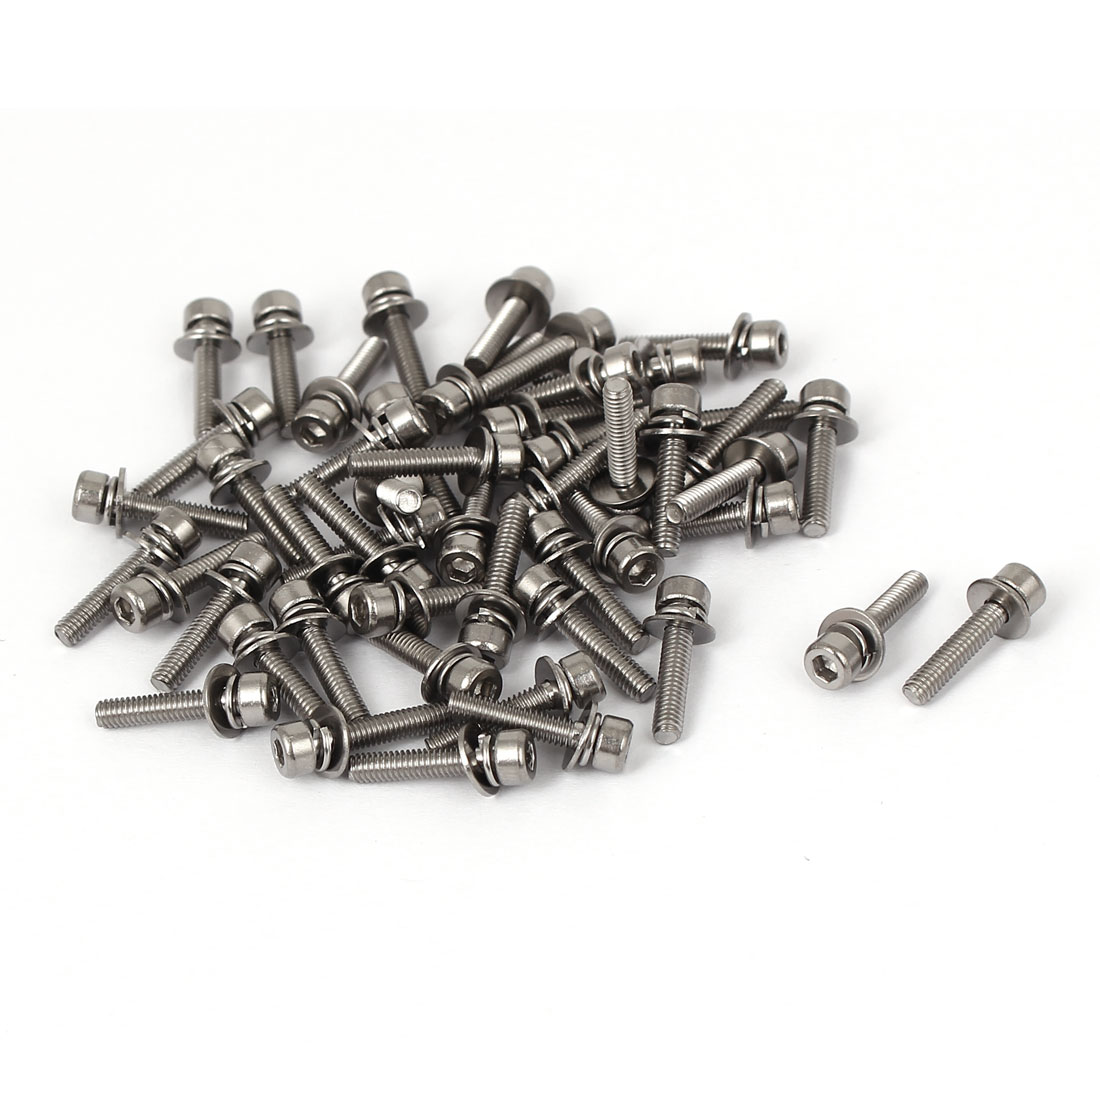 M2.5 x 12mm 0.45mm Thread Pitch Hex Socket Head Cap Screw w Washer 50 Pcs